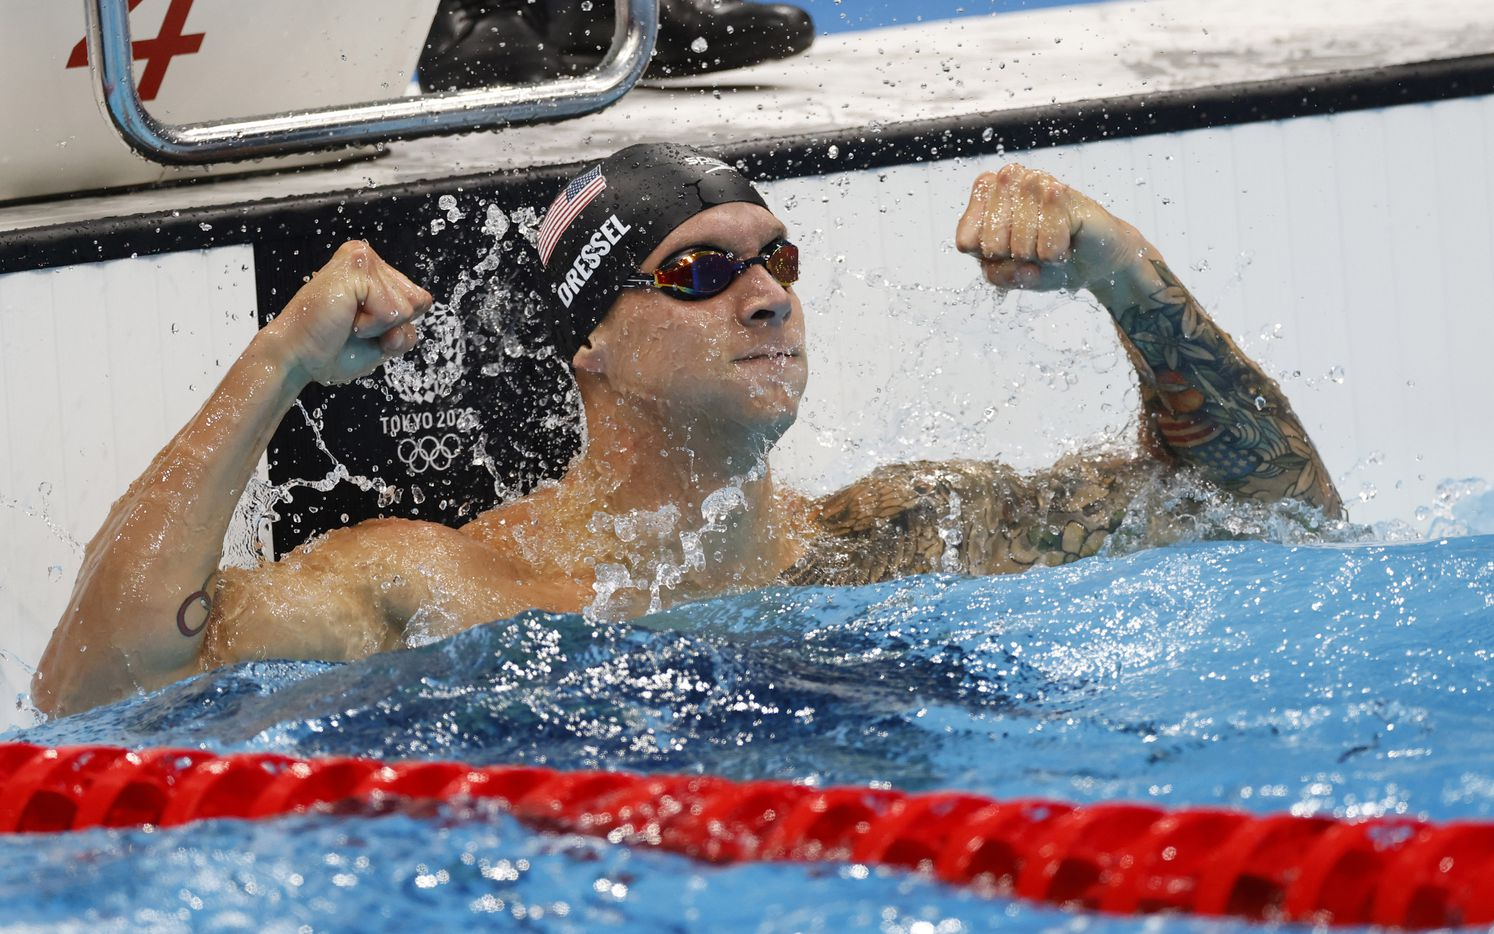 USA's Caeleb Dressel celebrates after winning the men's 50 meter freestyle final during the postponed 2020 Tokyo Olympics at Tokyo Aquatics Centre, on Sunday, August 1, 2021, in Tokyo, Japan. Dressel earned a gold medal with a time of 21.07 seconds. (Vernon Bryant/The Dallas Morning News)